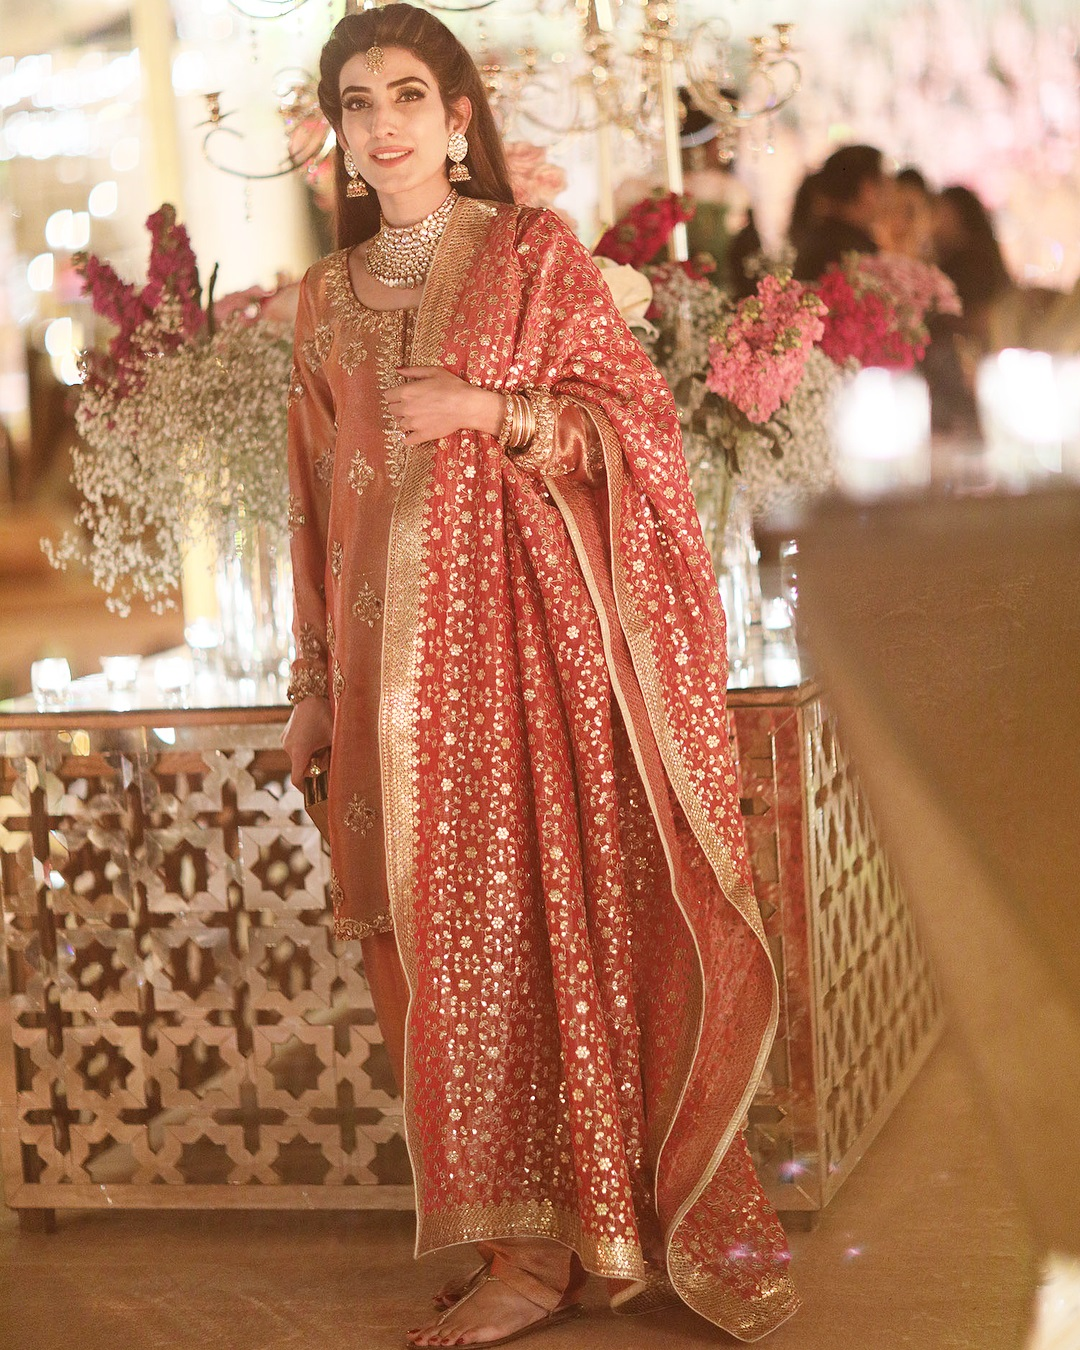 Sabyasachi Collection At This Pakistani Wedding Is Something To Look